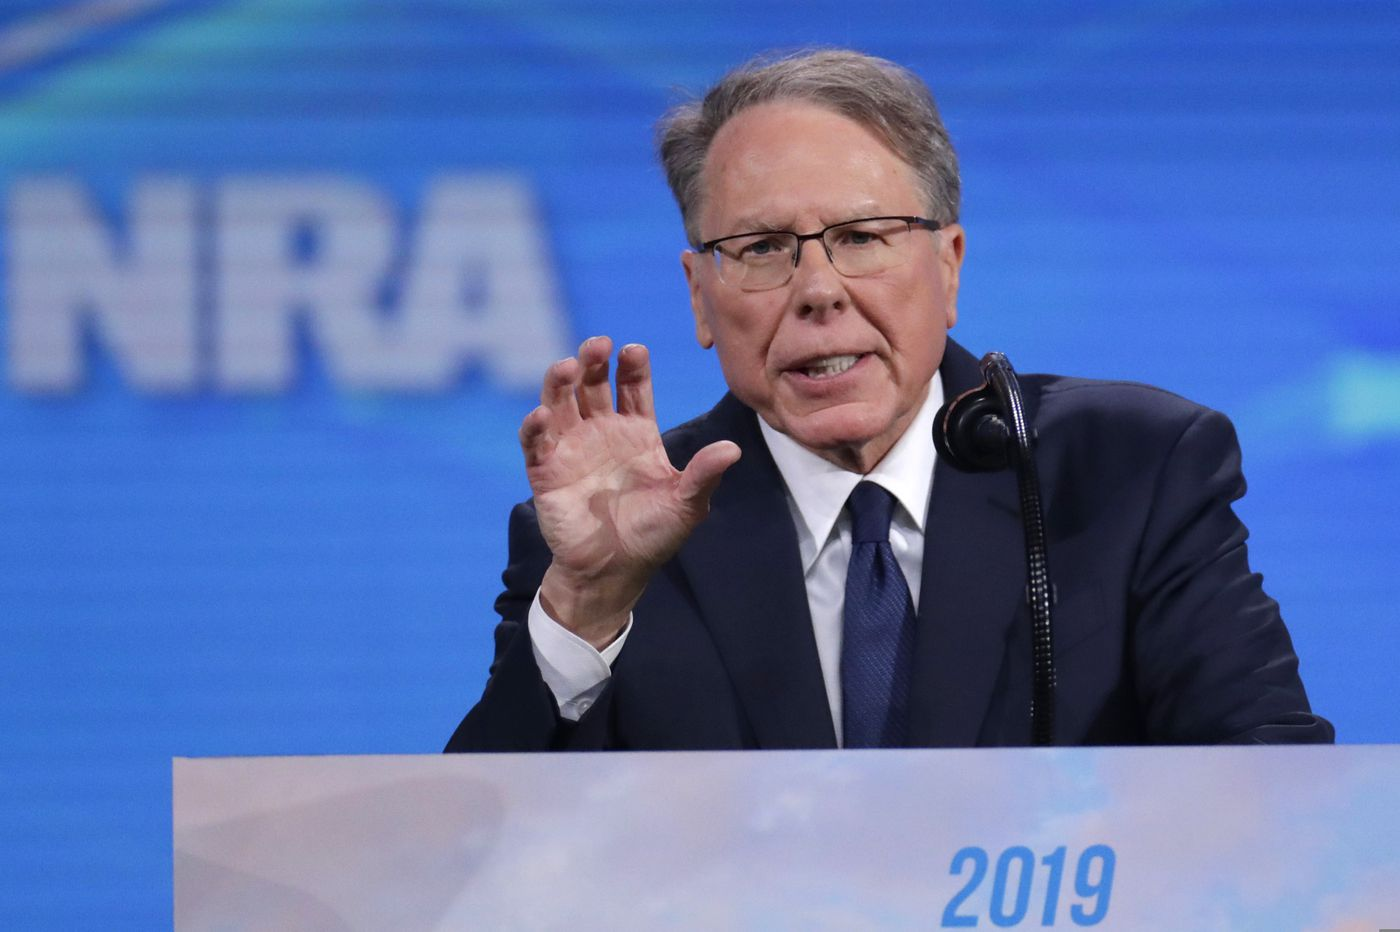 NRA's Wayne LaPierre says Oliver North is extorting him